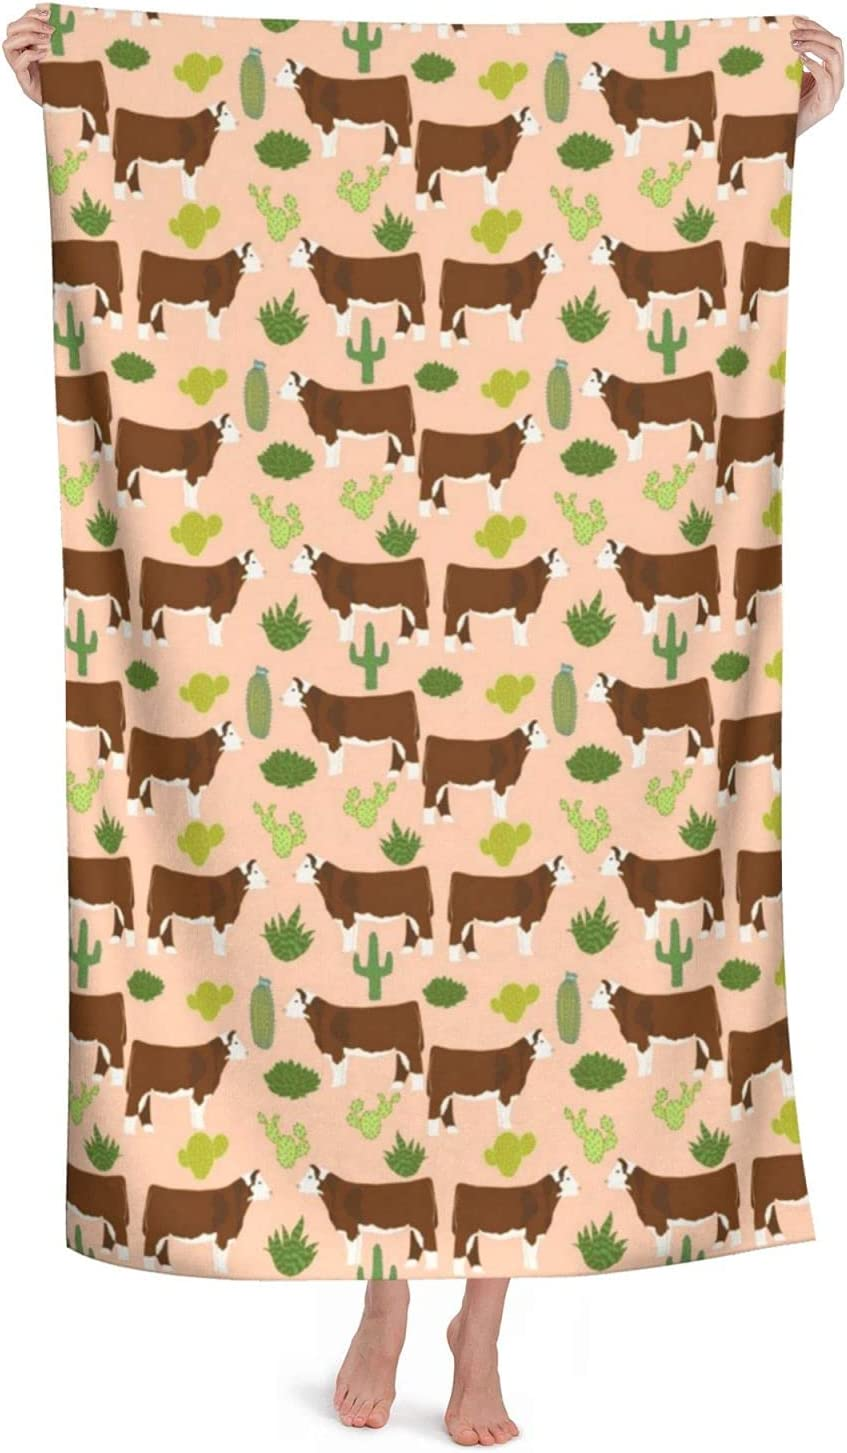 Sales of SALE items from new works Hereford Cow Fabric Cattle and To Cactus Beach Minneapolis Mall Microfiber Towels